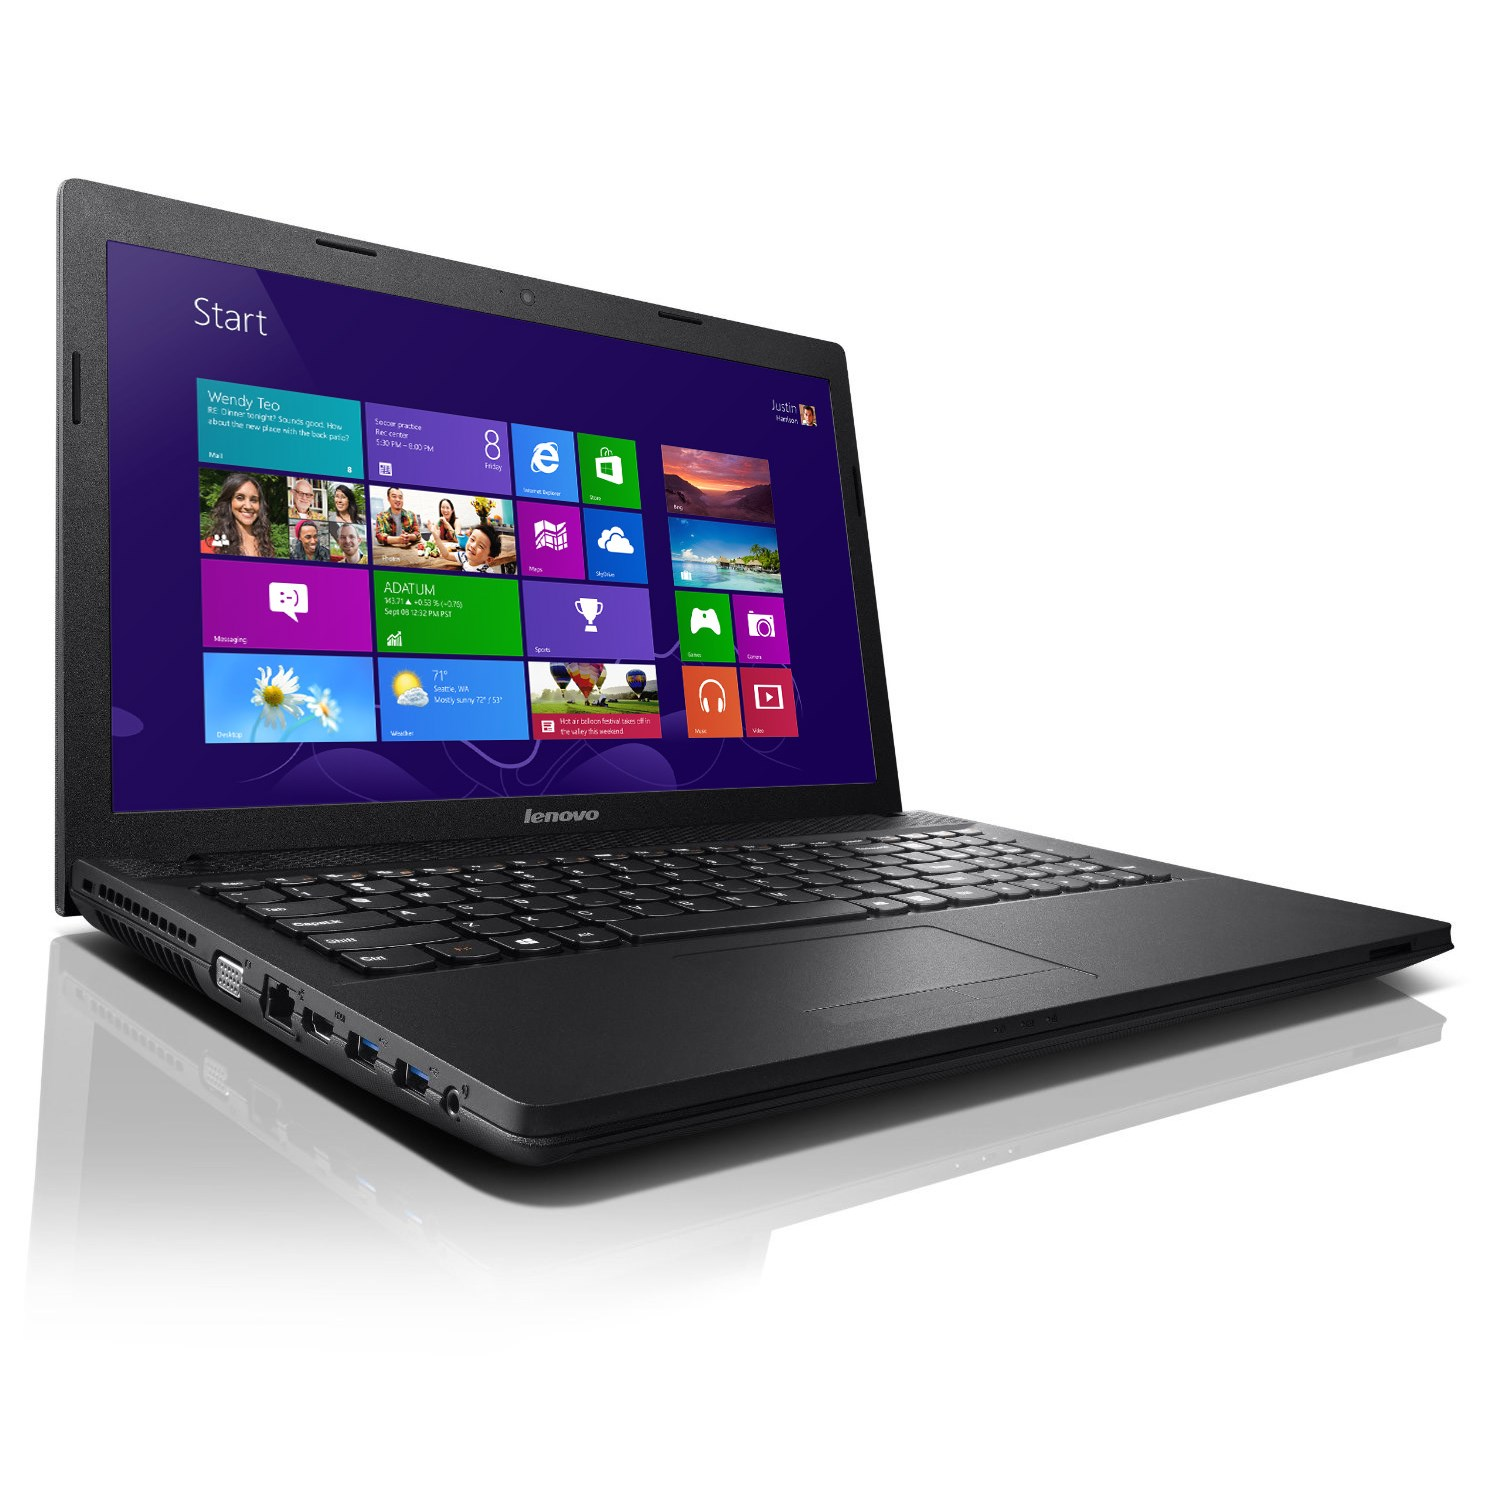 Download Lenovo G50 Drivers For Windows 8.1